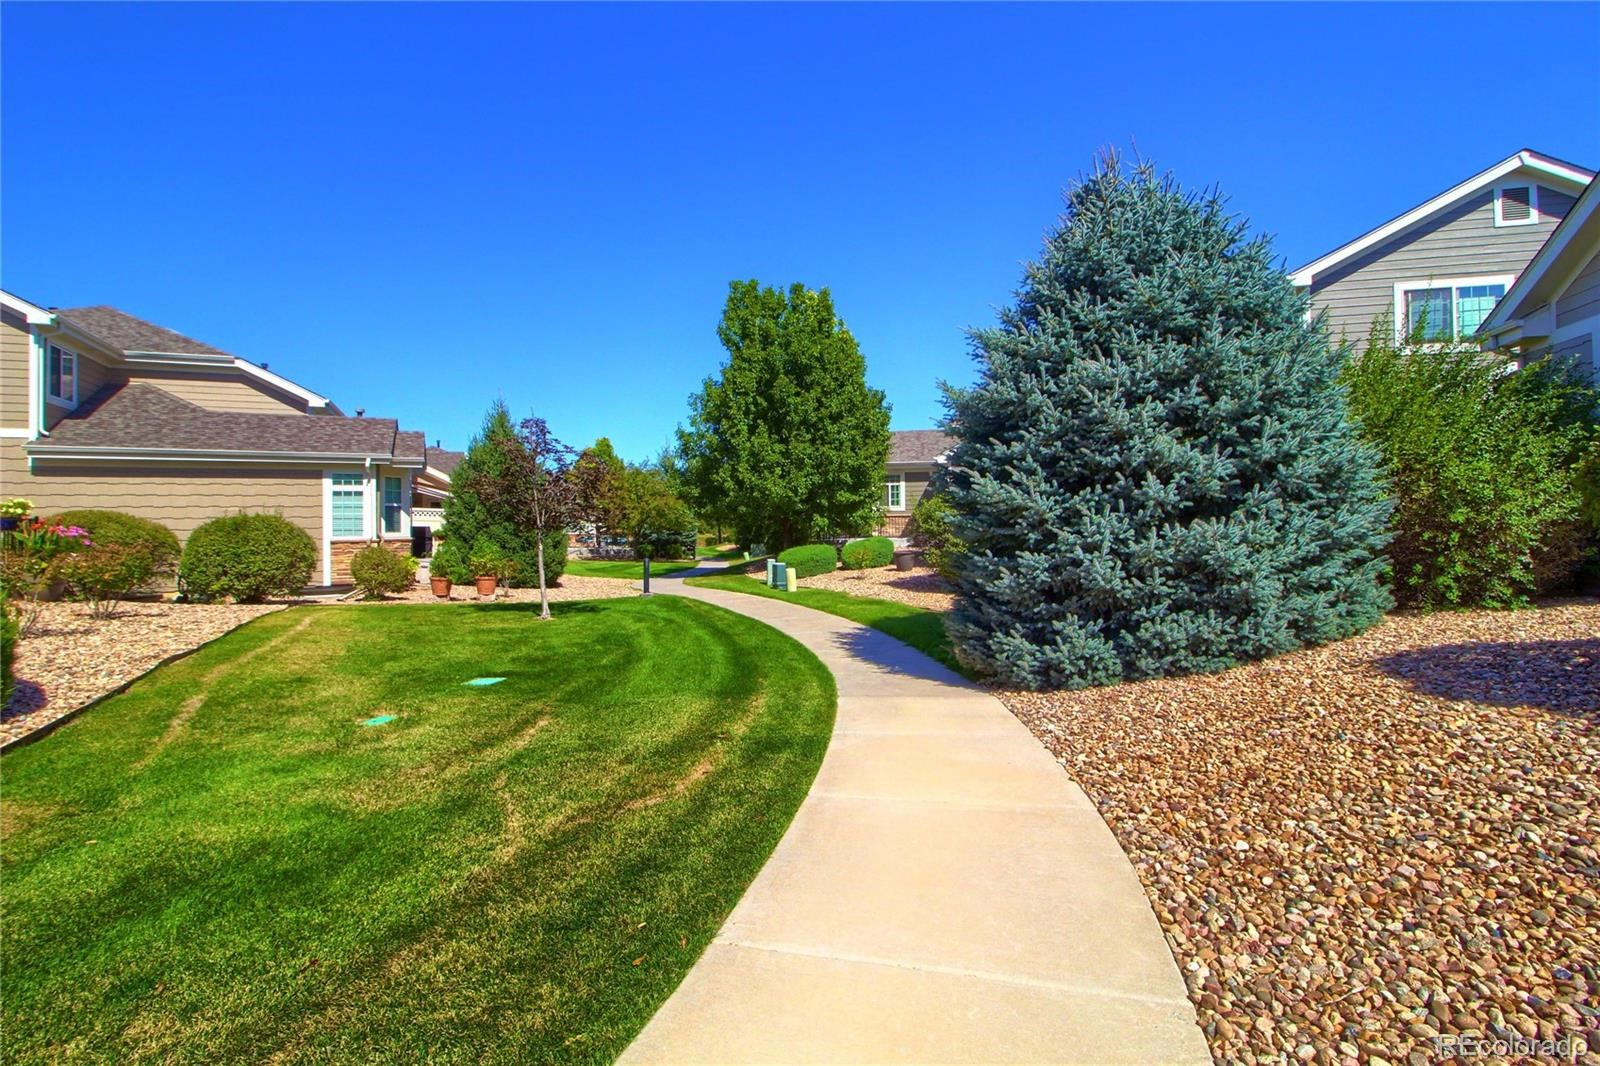 MLS# 8597792 - 40 - 13787 Stone Circle #101, Broomfield, CO 80023